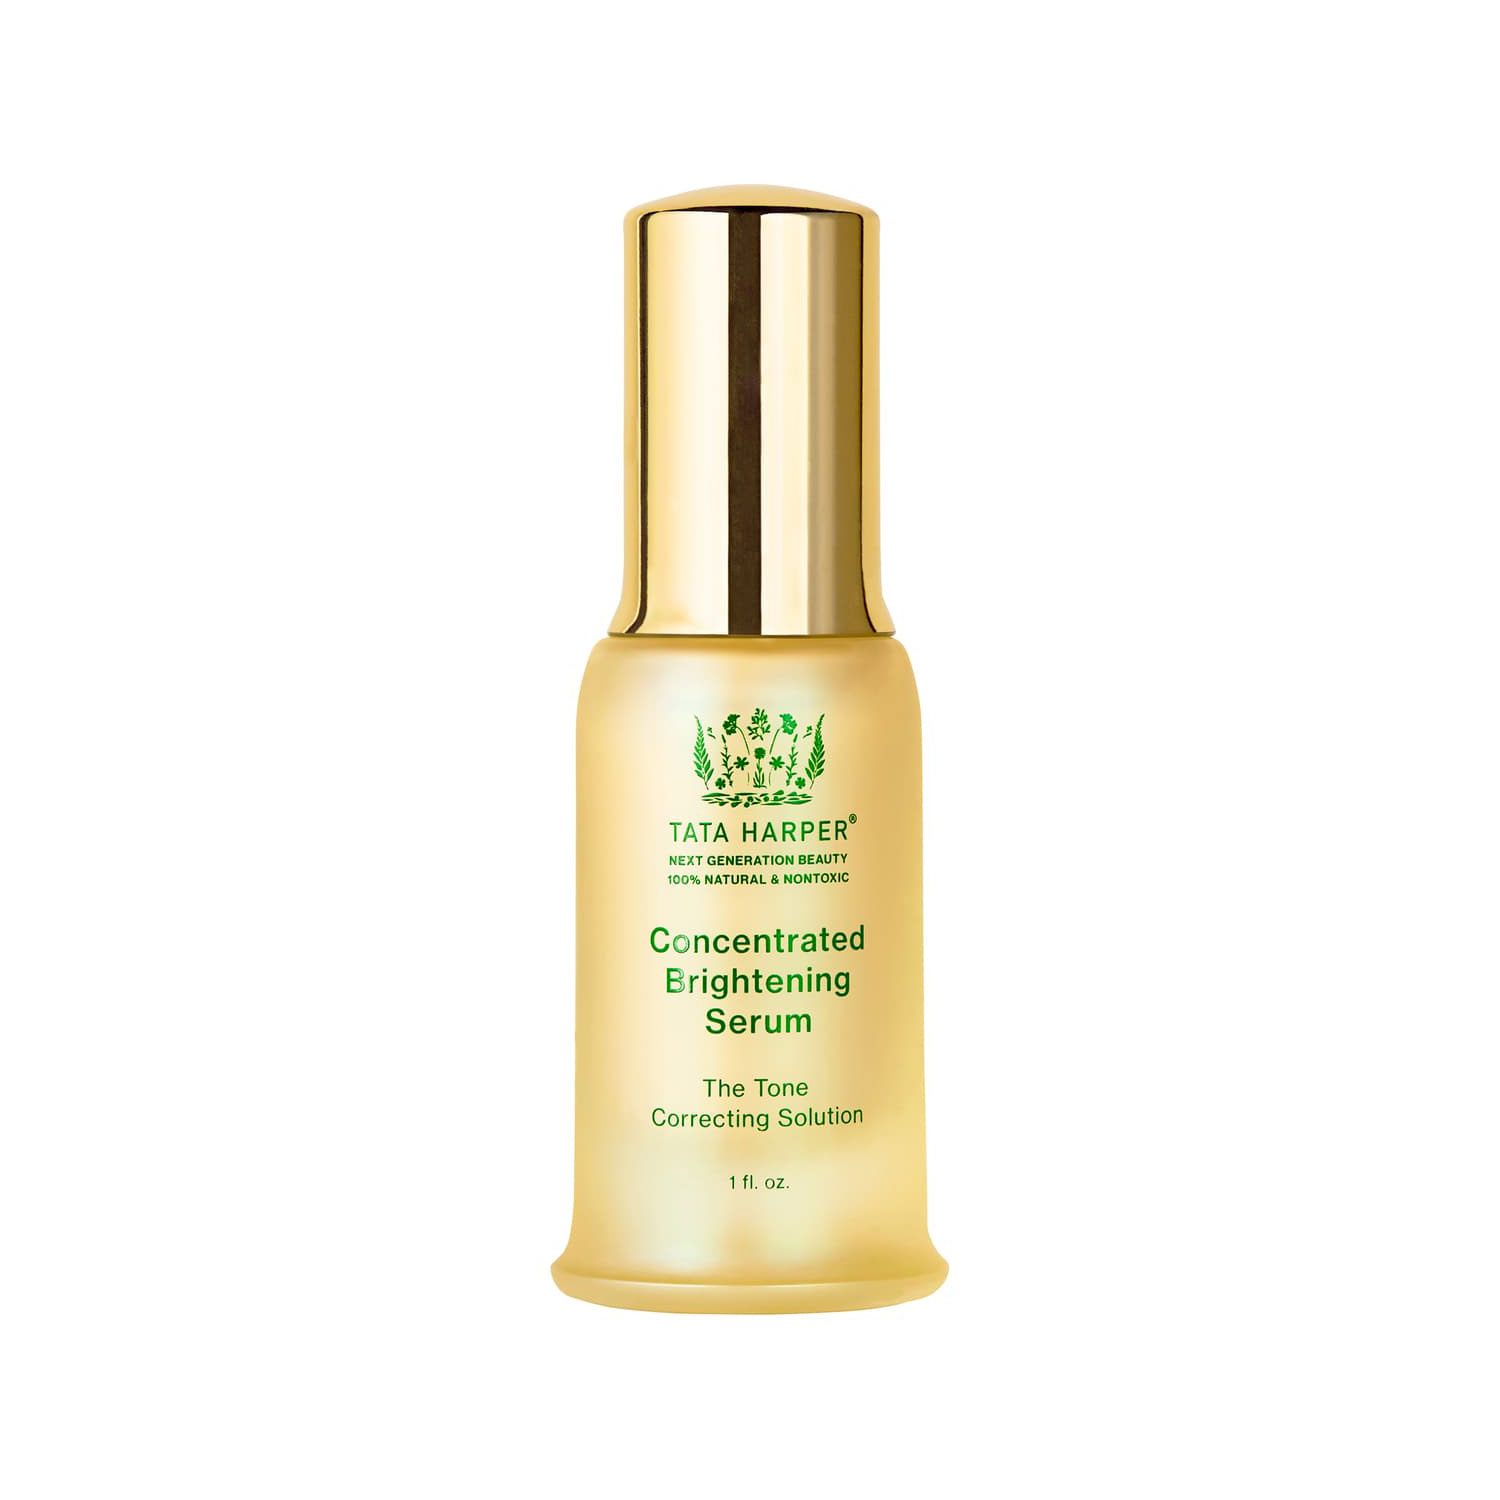 Step 3: Concentrated Brightening Serum